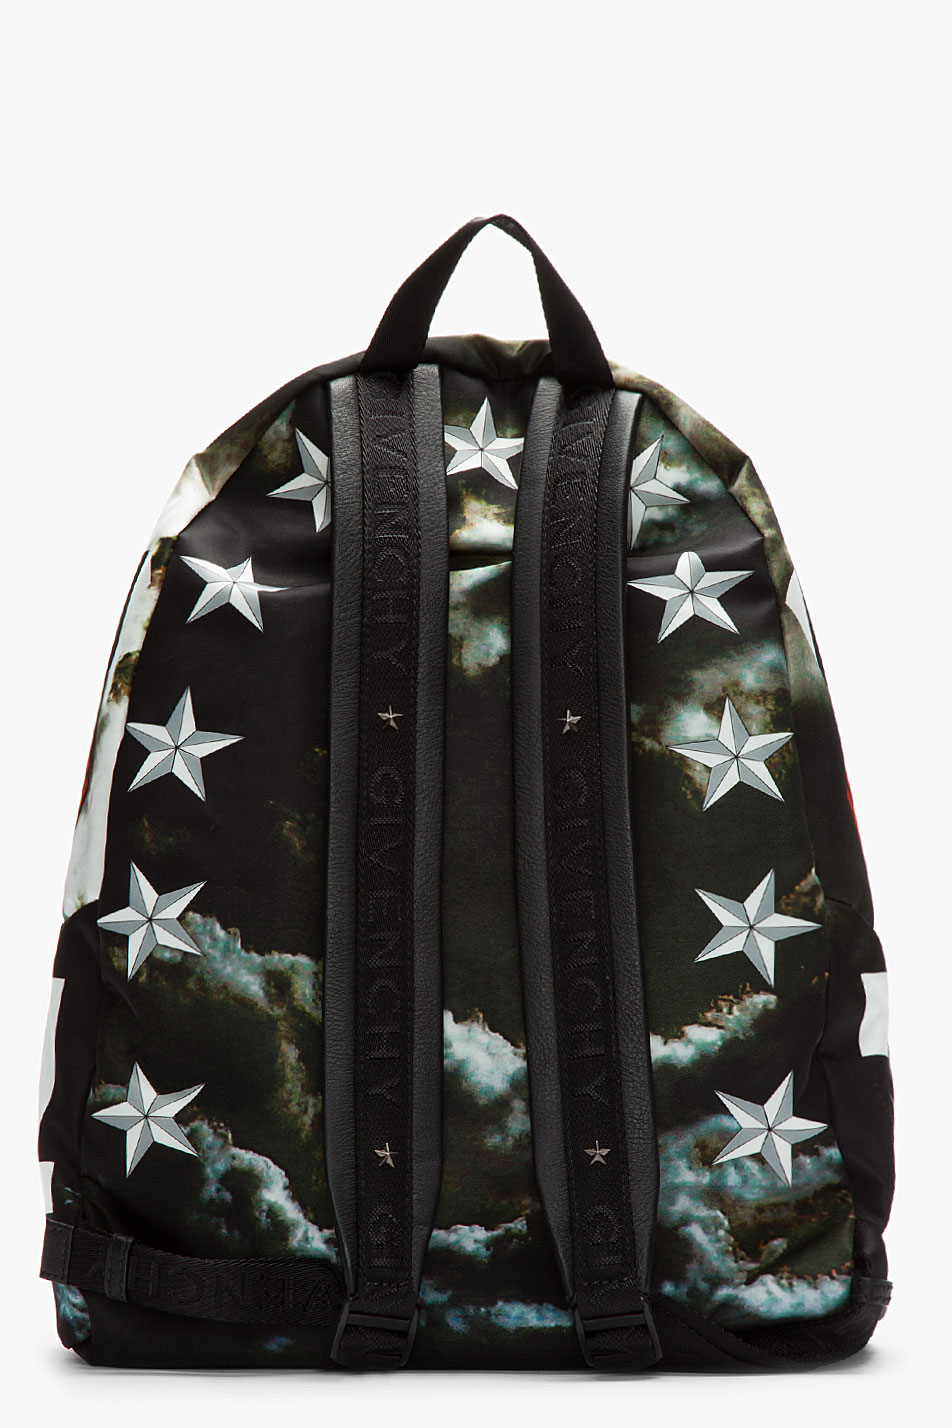 Fearless Leather Trimmed Backpacks from Givenchy | SOLETOPIA